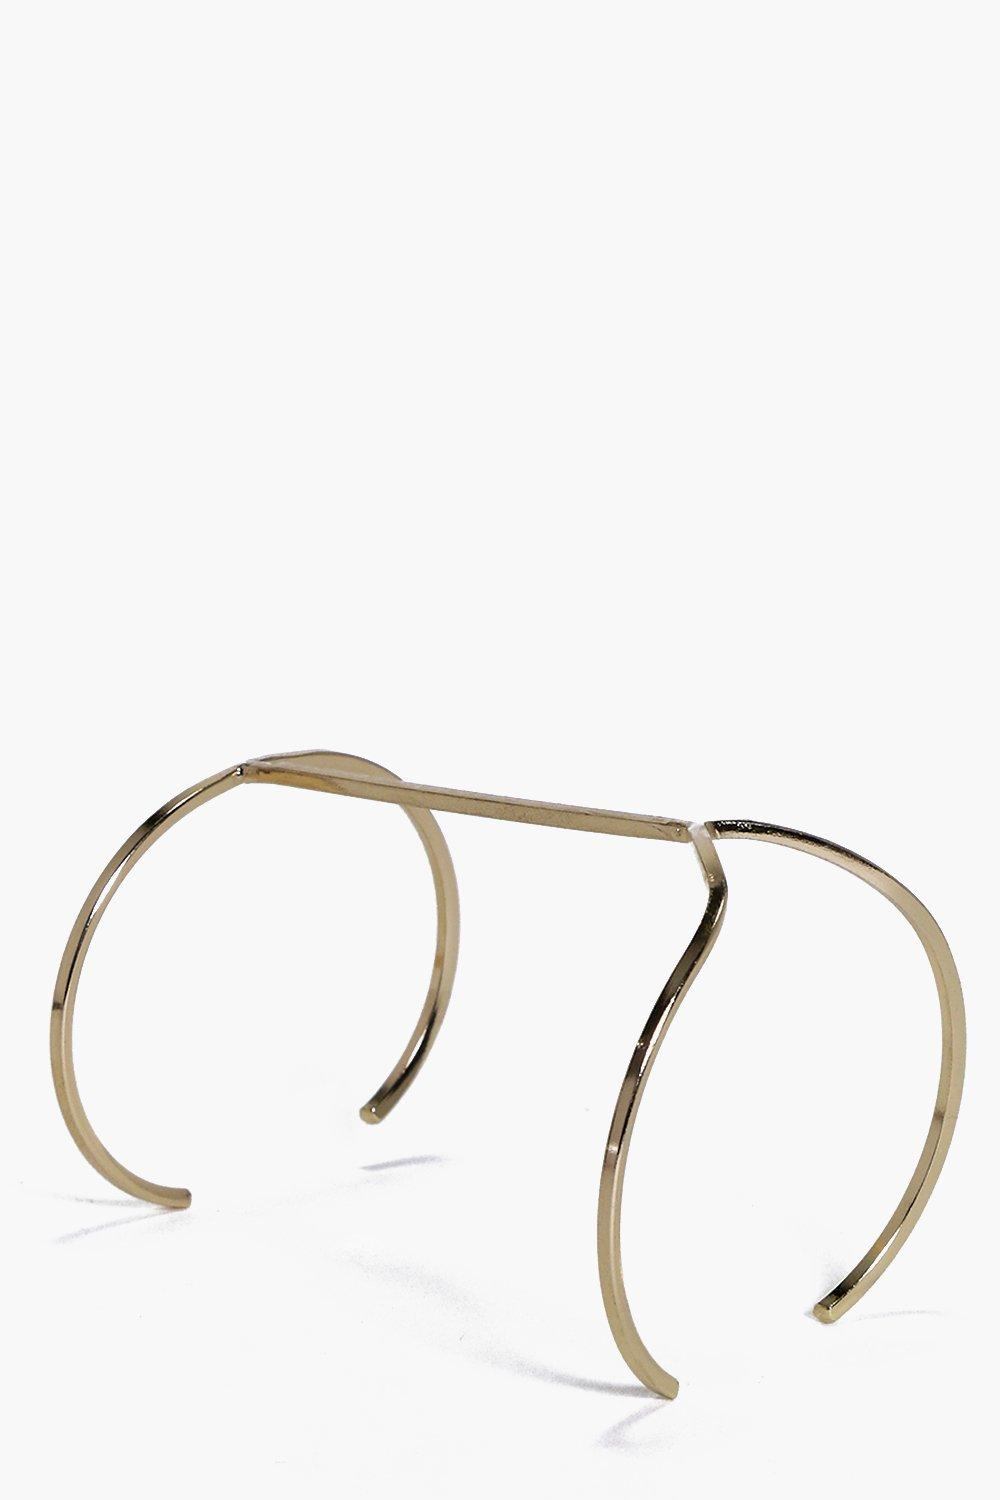 Tegan Skinny Simple Bracelet Cuff